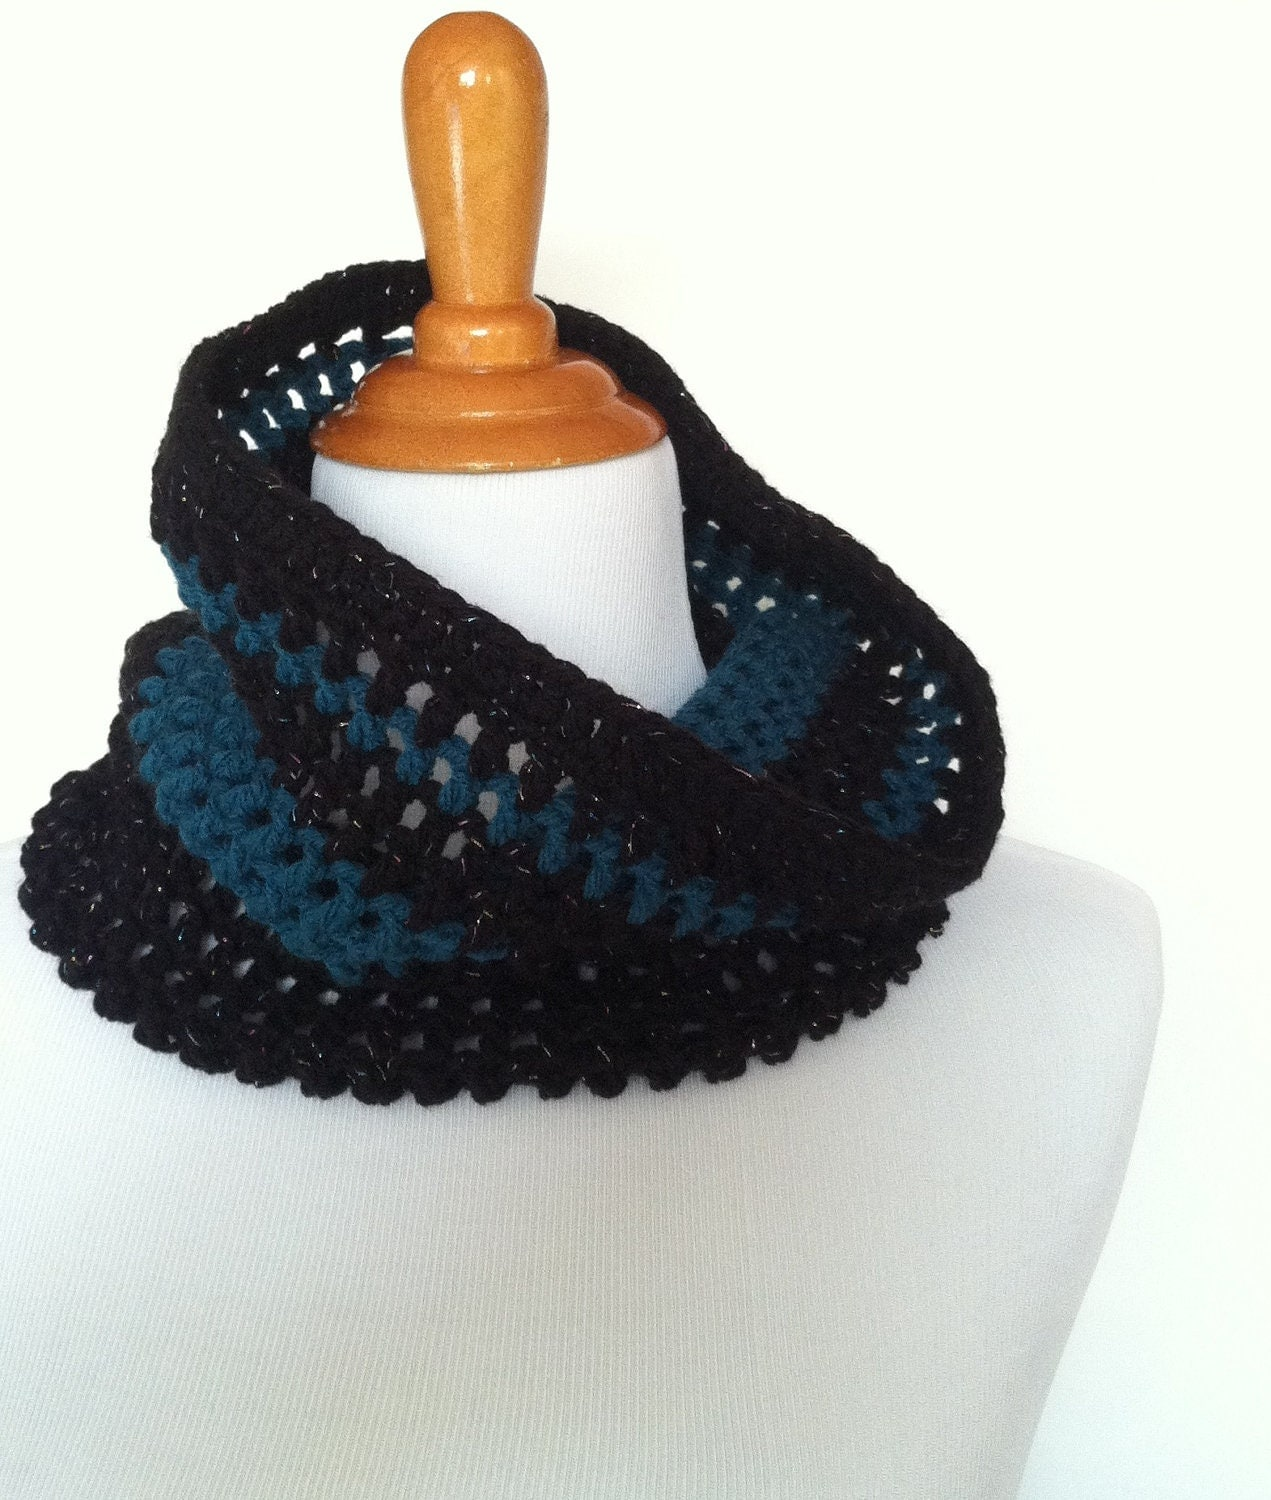 Crochet Cowl Circle Scarf Neck Warmer Mesh Stitch by ByDDHines Cowl Neck Scarves Crochet